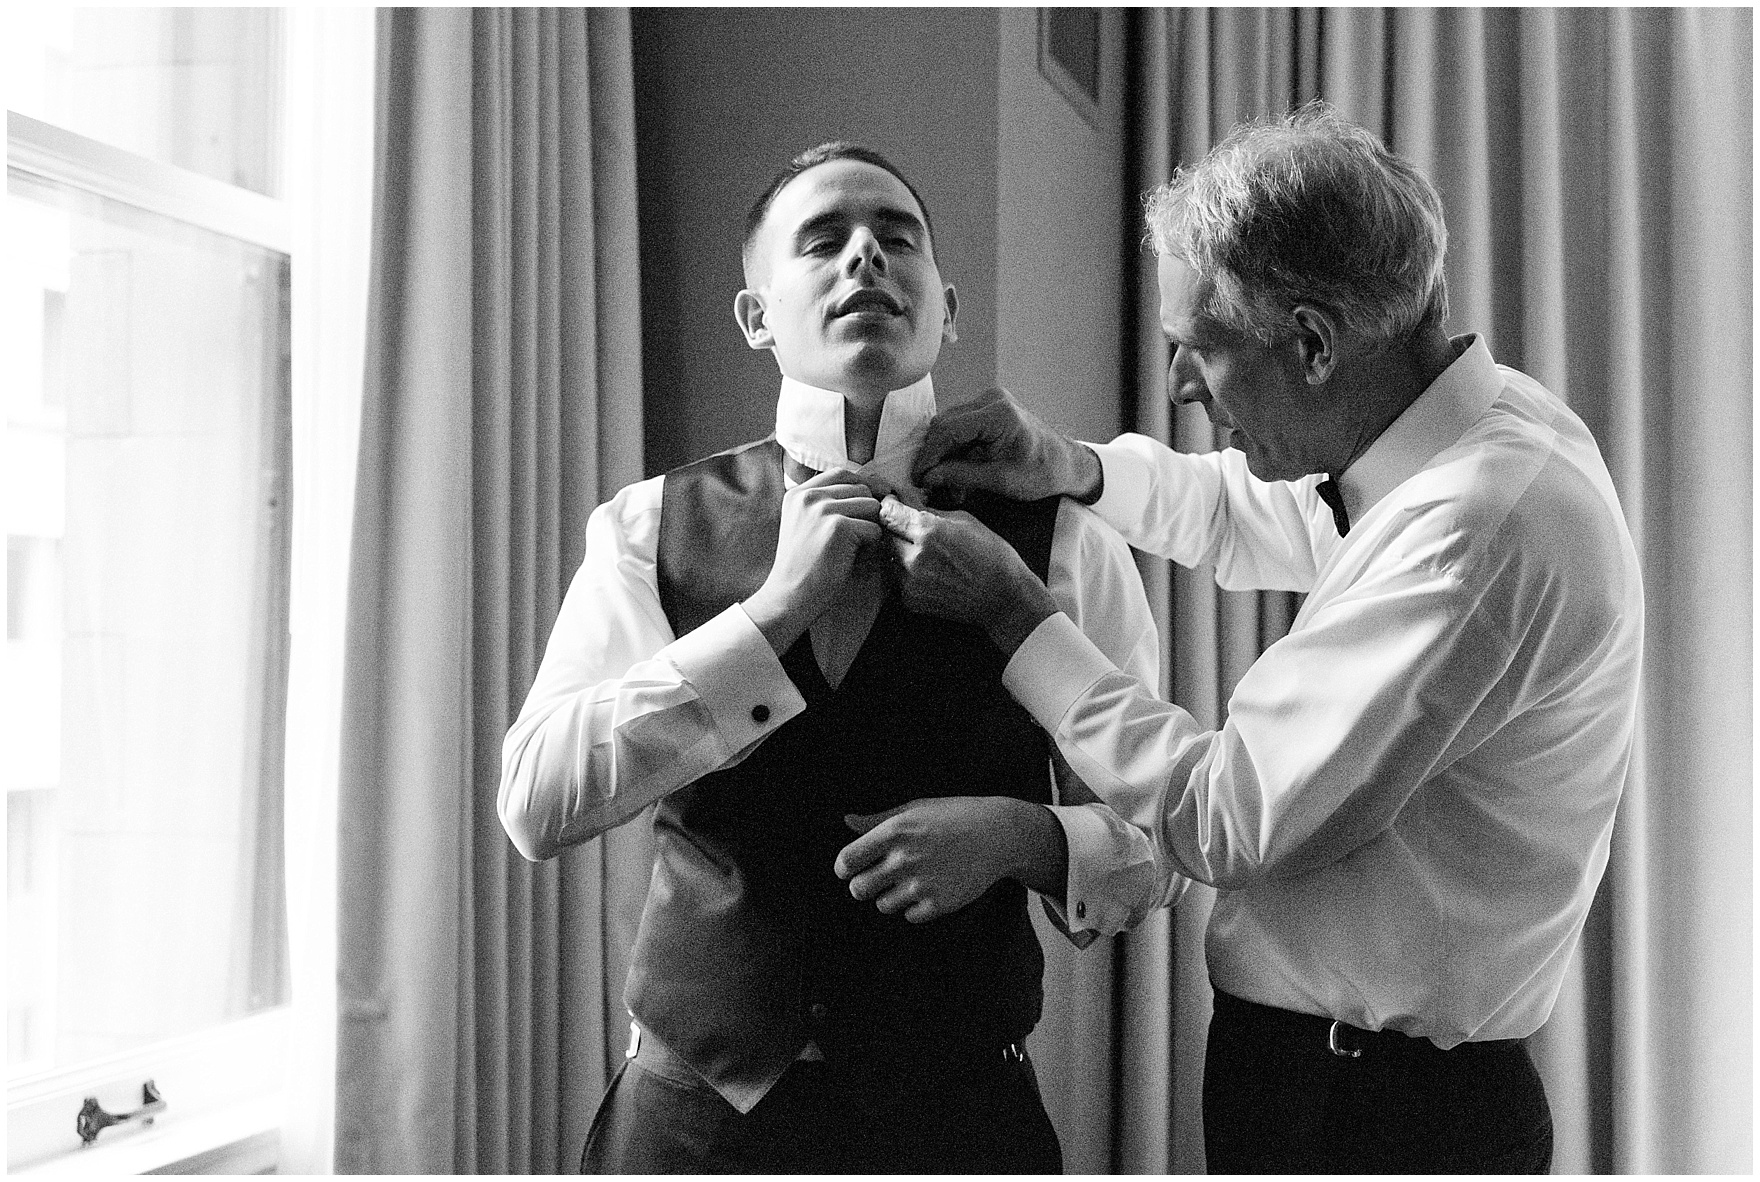 The groom's father helps with his tie for a Newberry Library Chicago wedding.